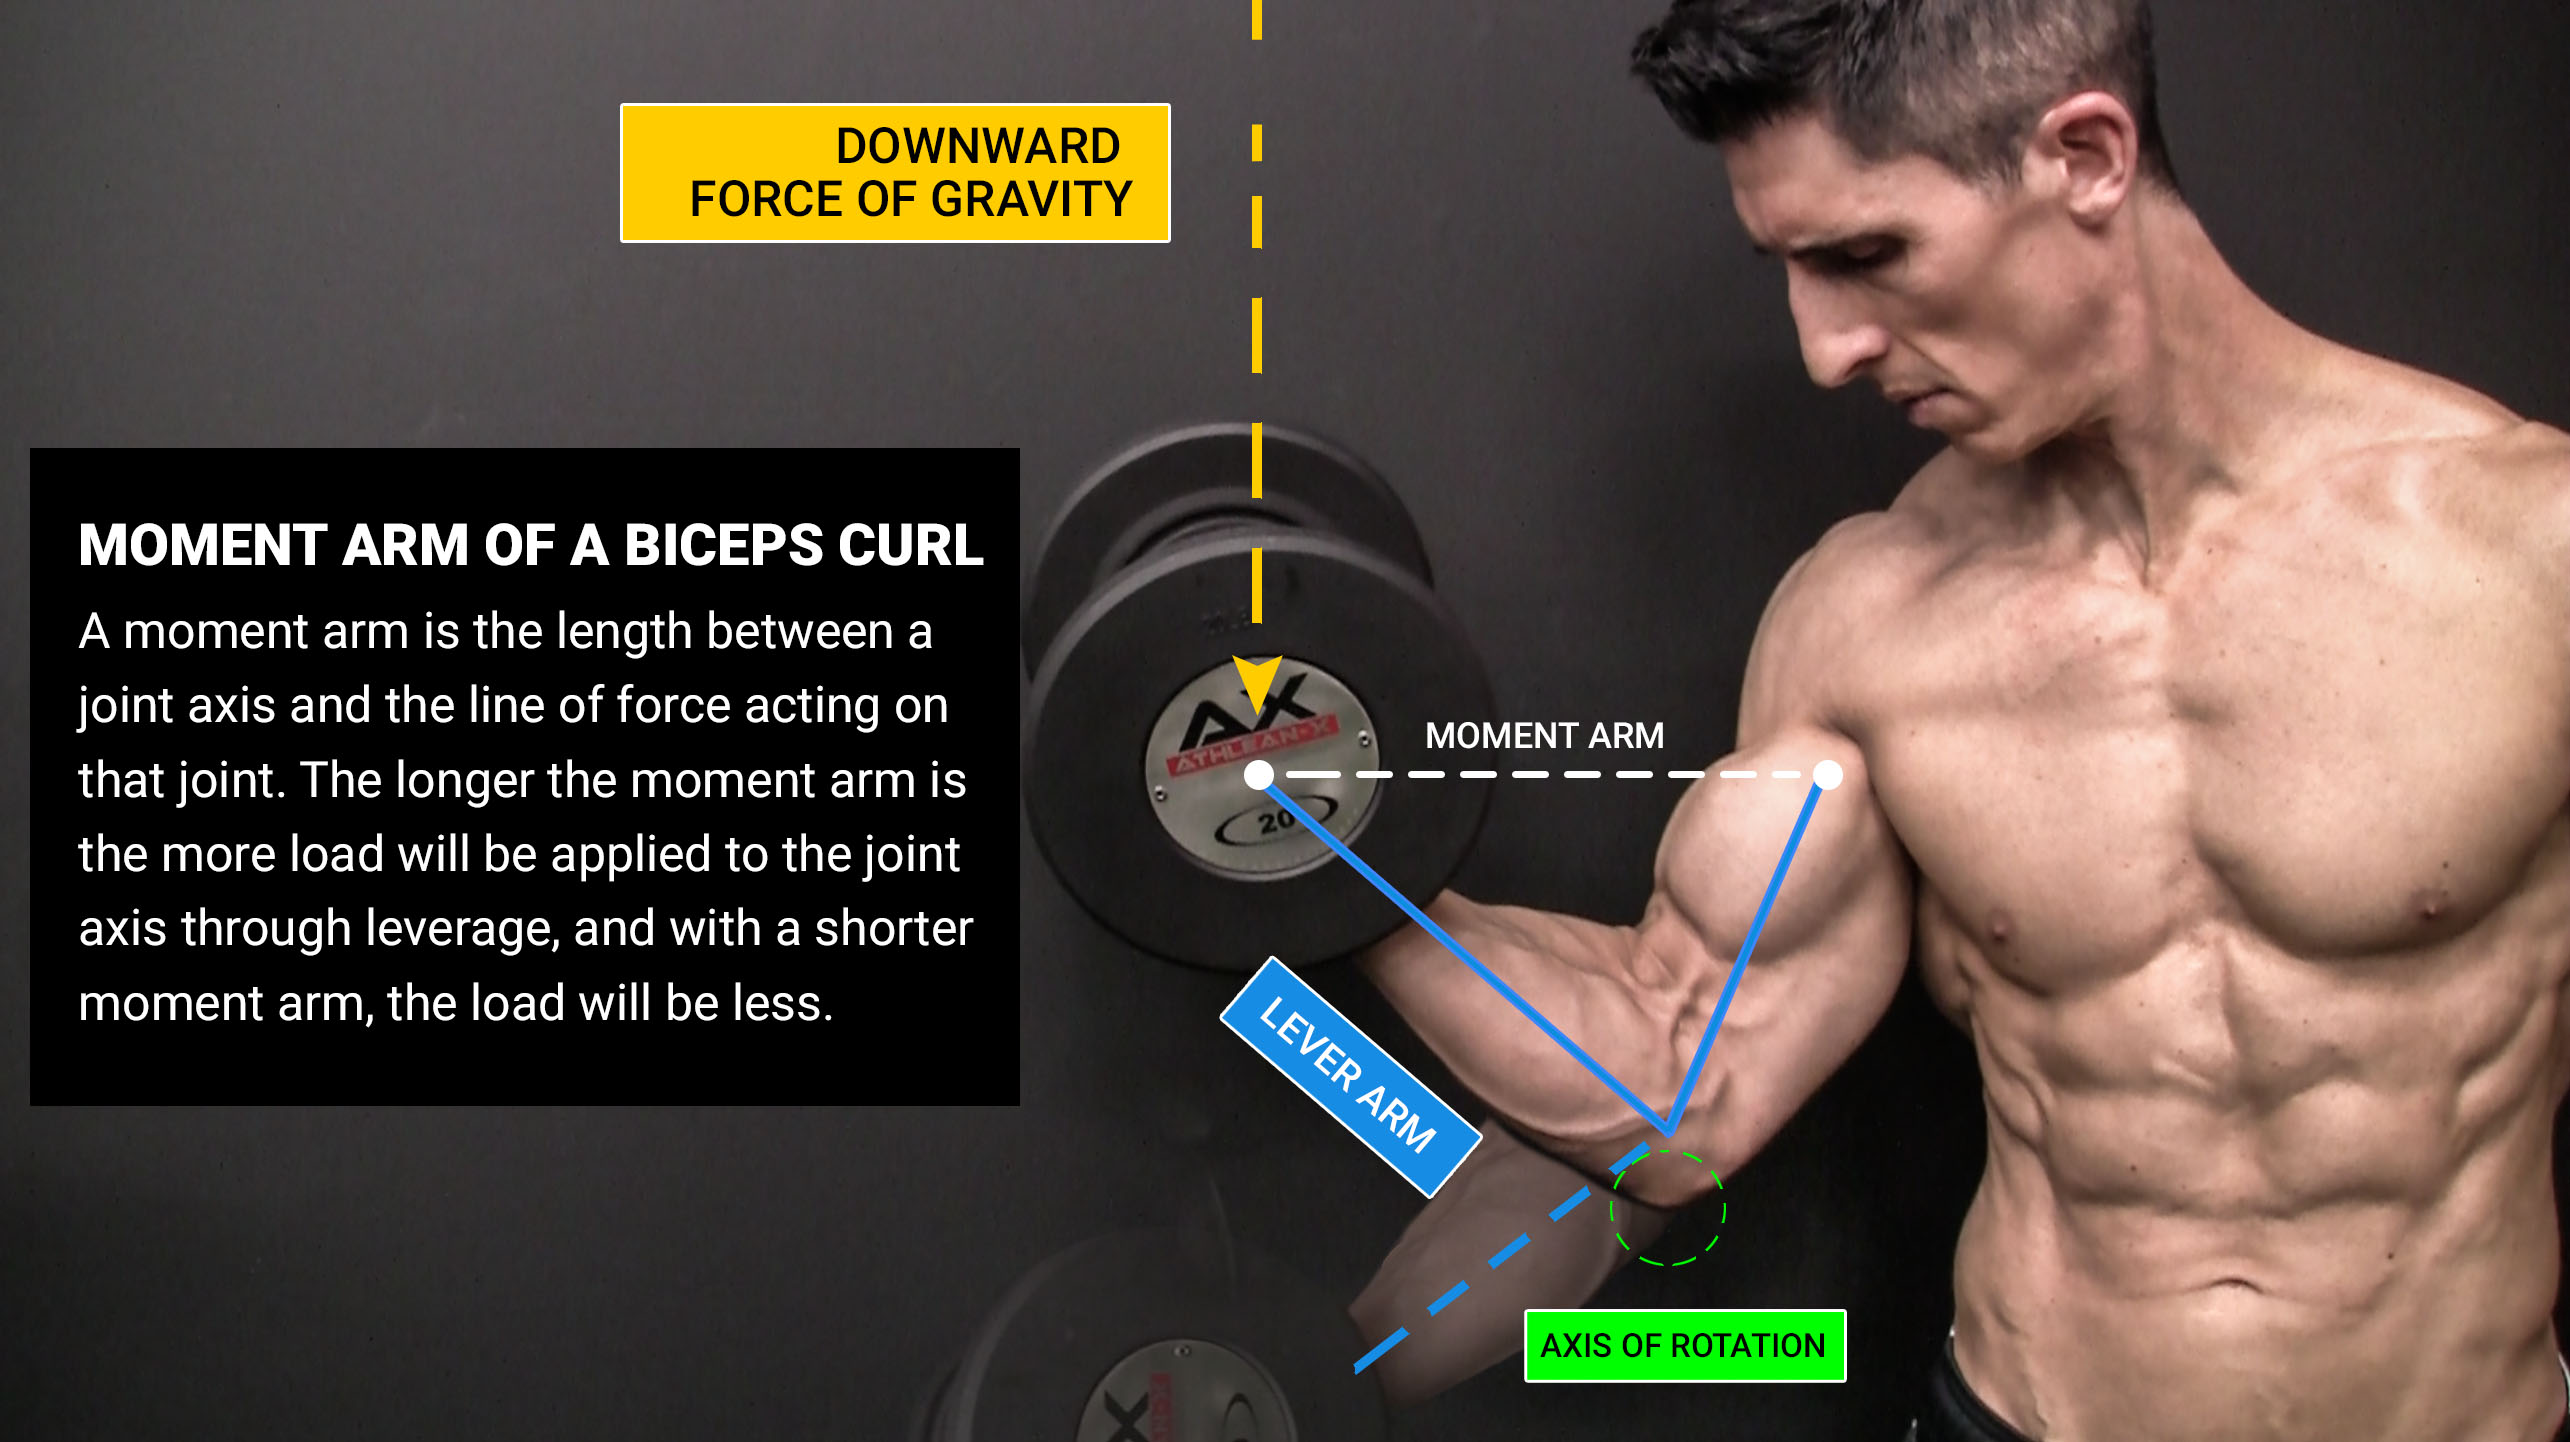 moment arm of a biceps curl with definition, downward force of gravity, lever arm and axis of rotation